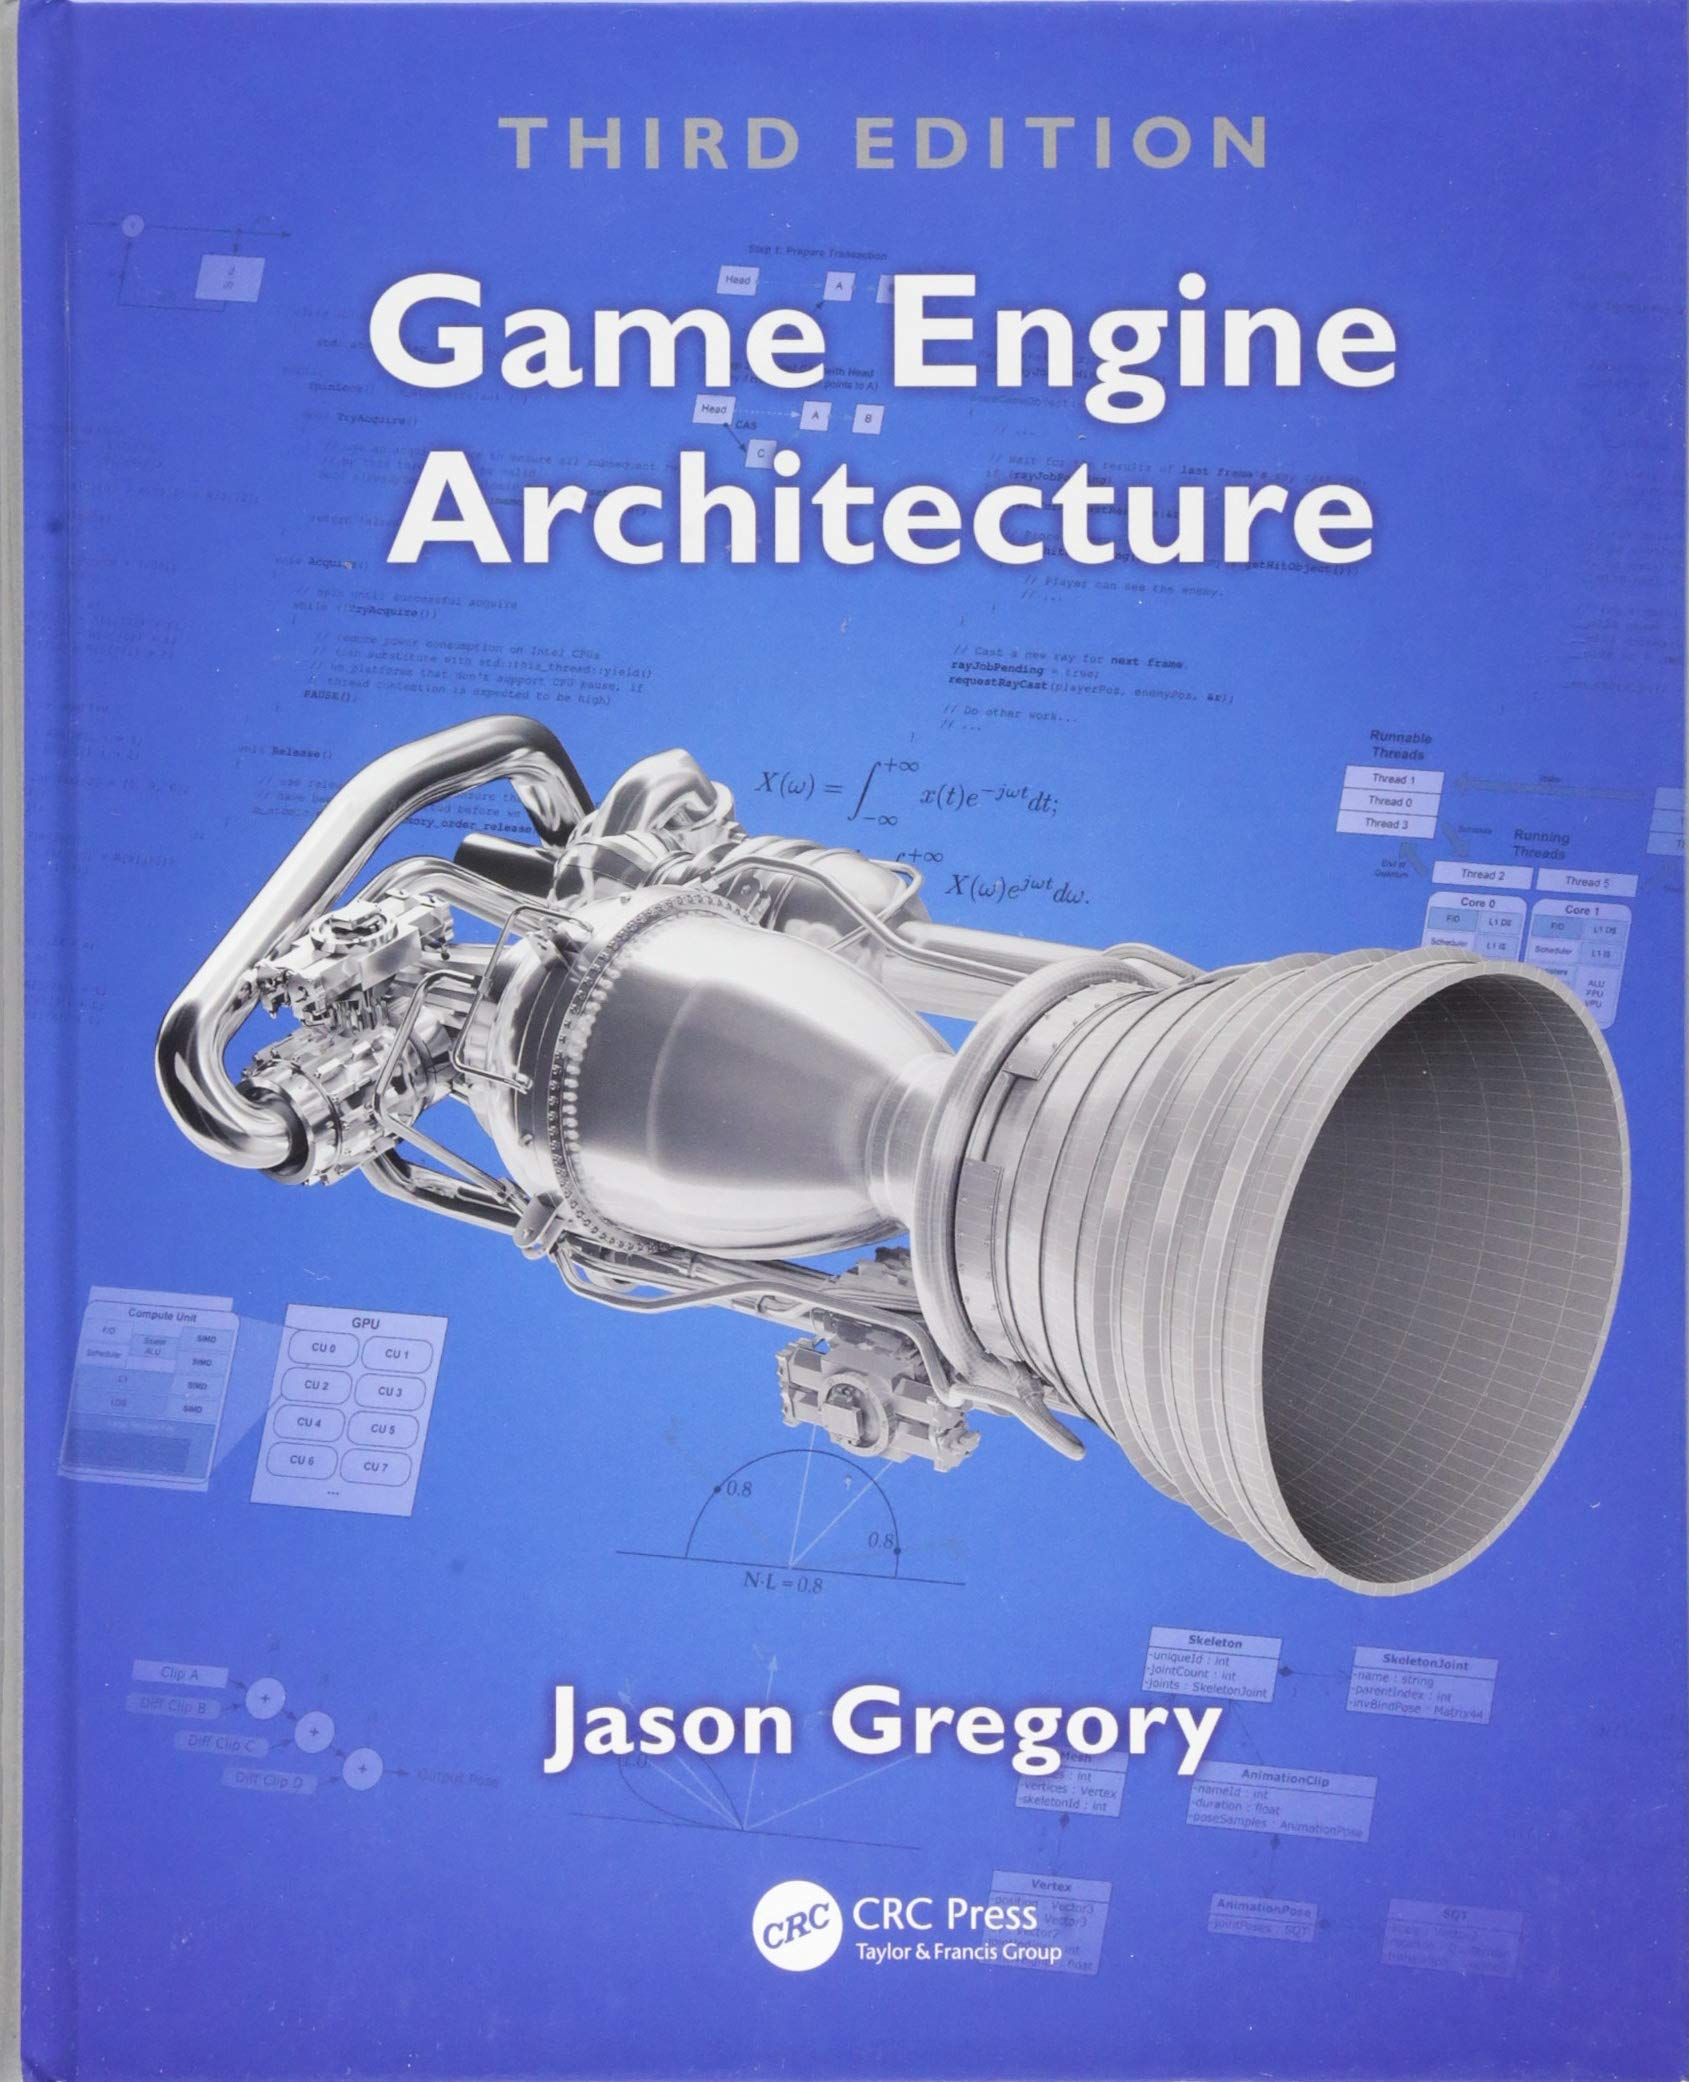 Image OfGame Engine Architecture, Third Edition